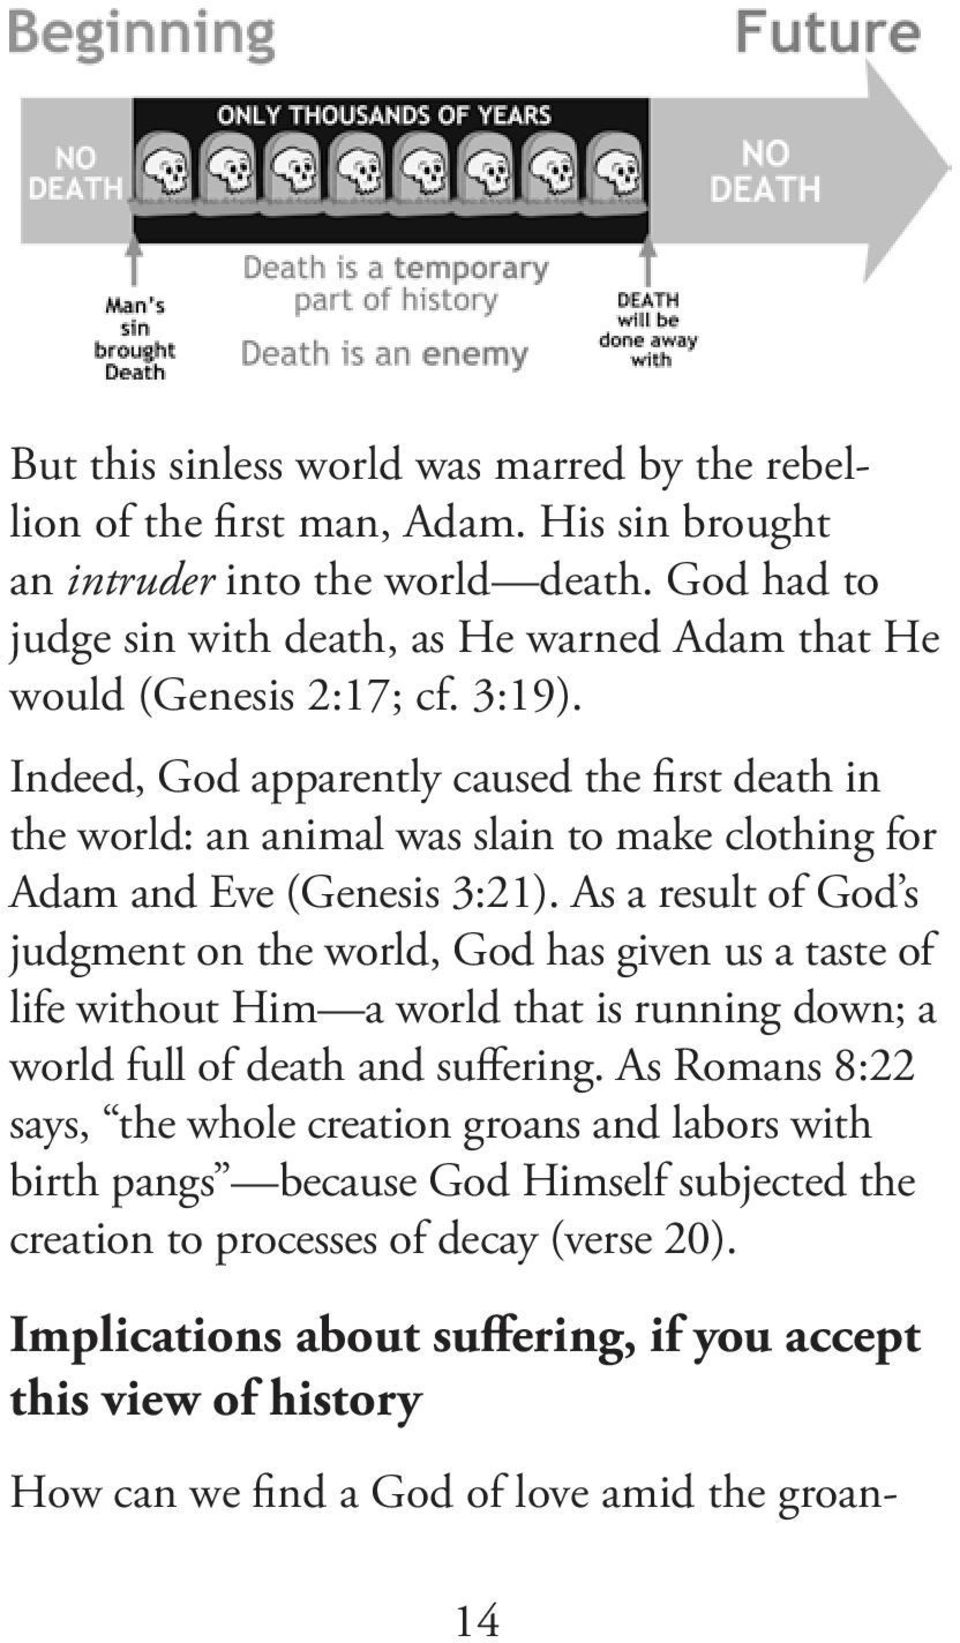 Indeed, God apparently caused the first death in the world: an animal was slain to make clothing for Adam and Eve (Genesis 3:21).